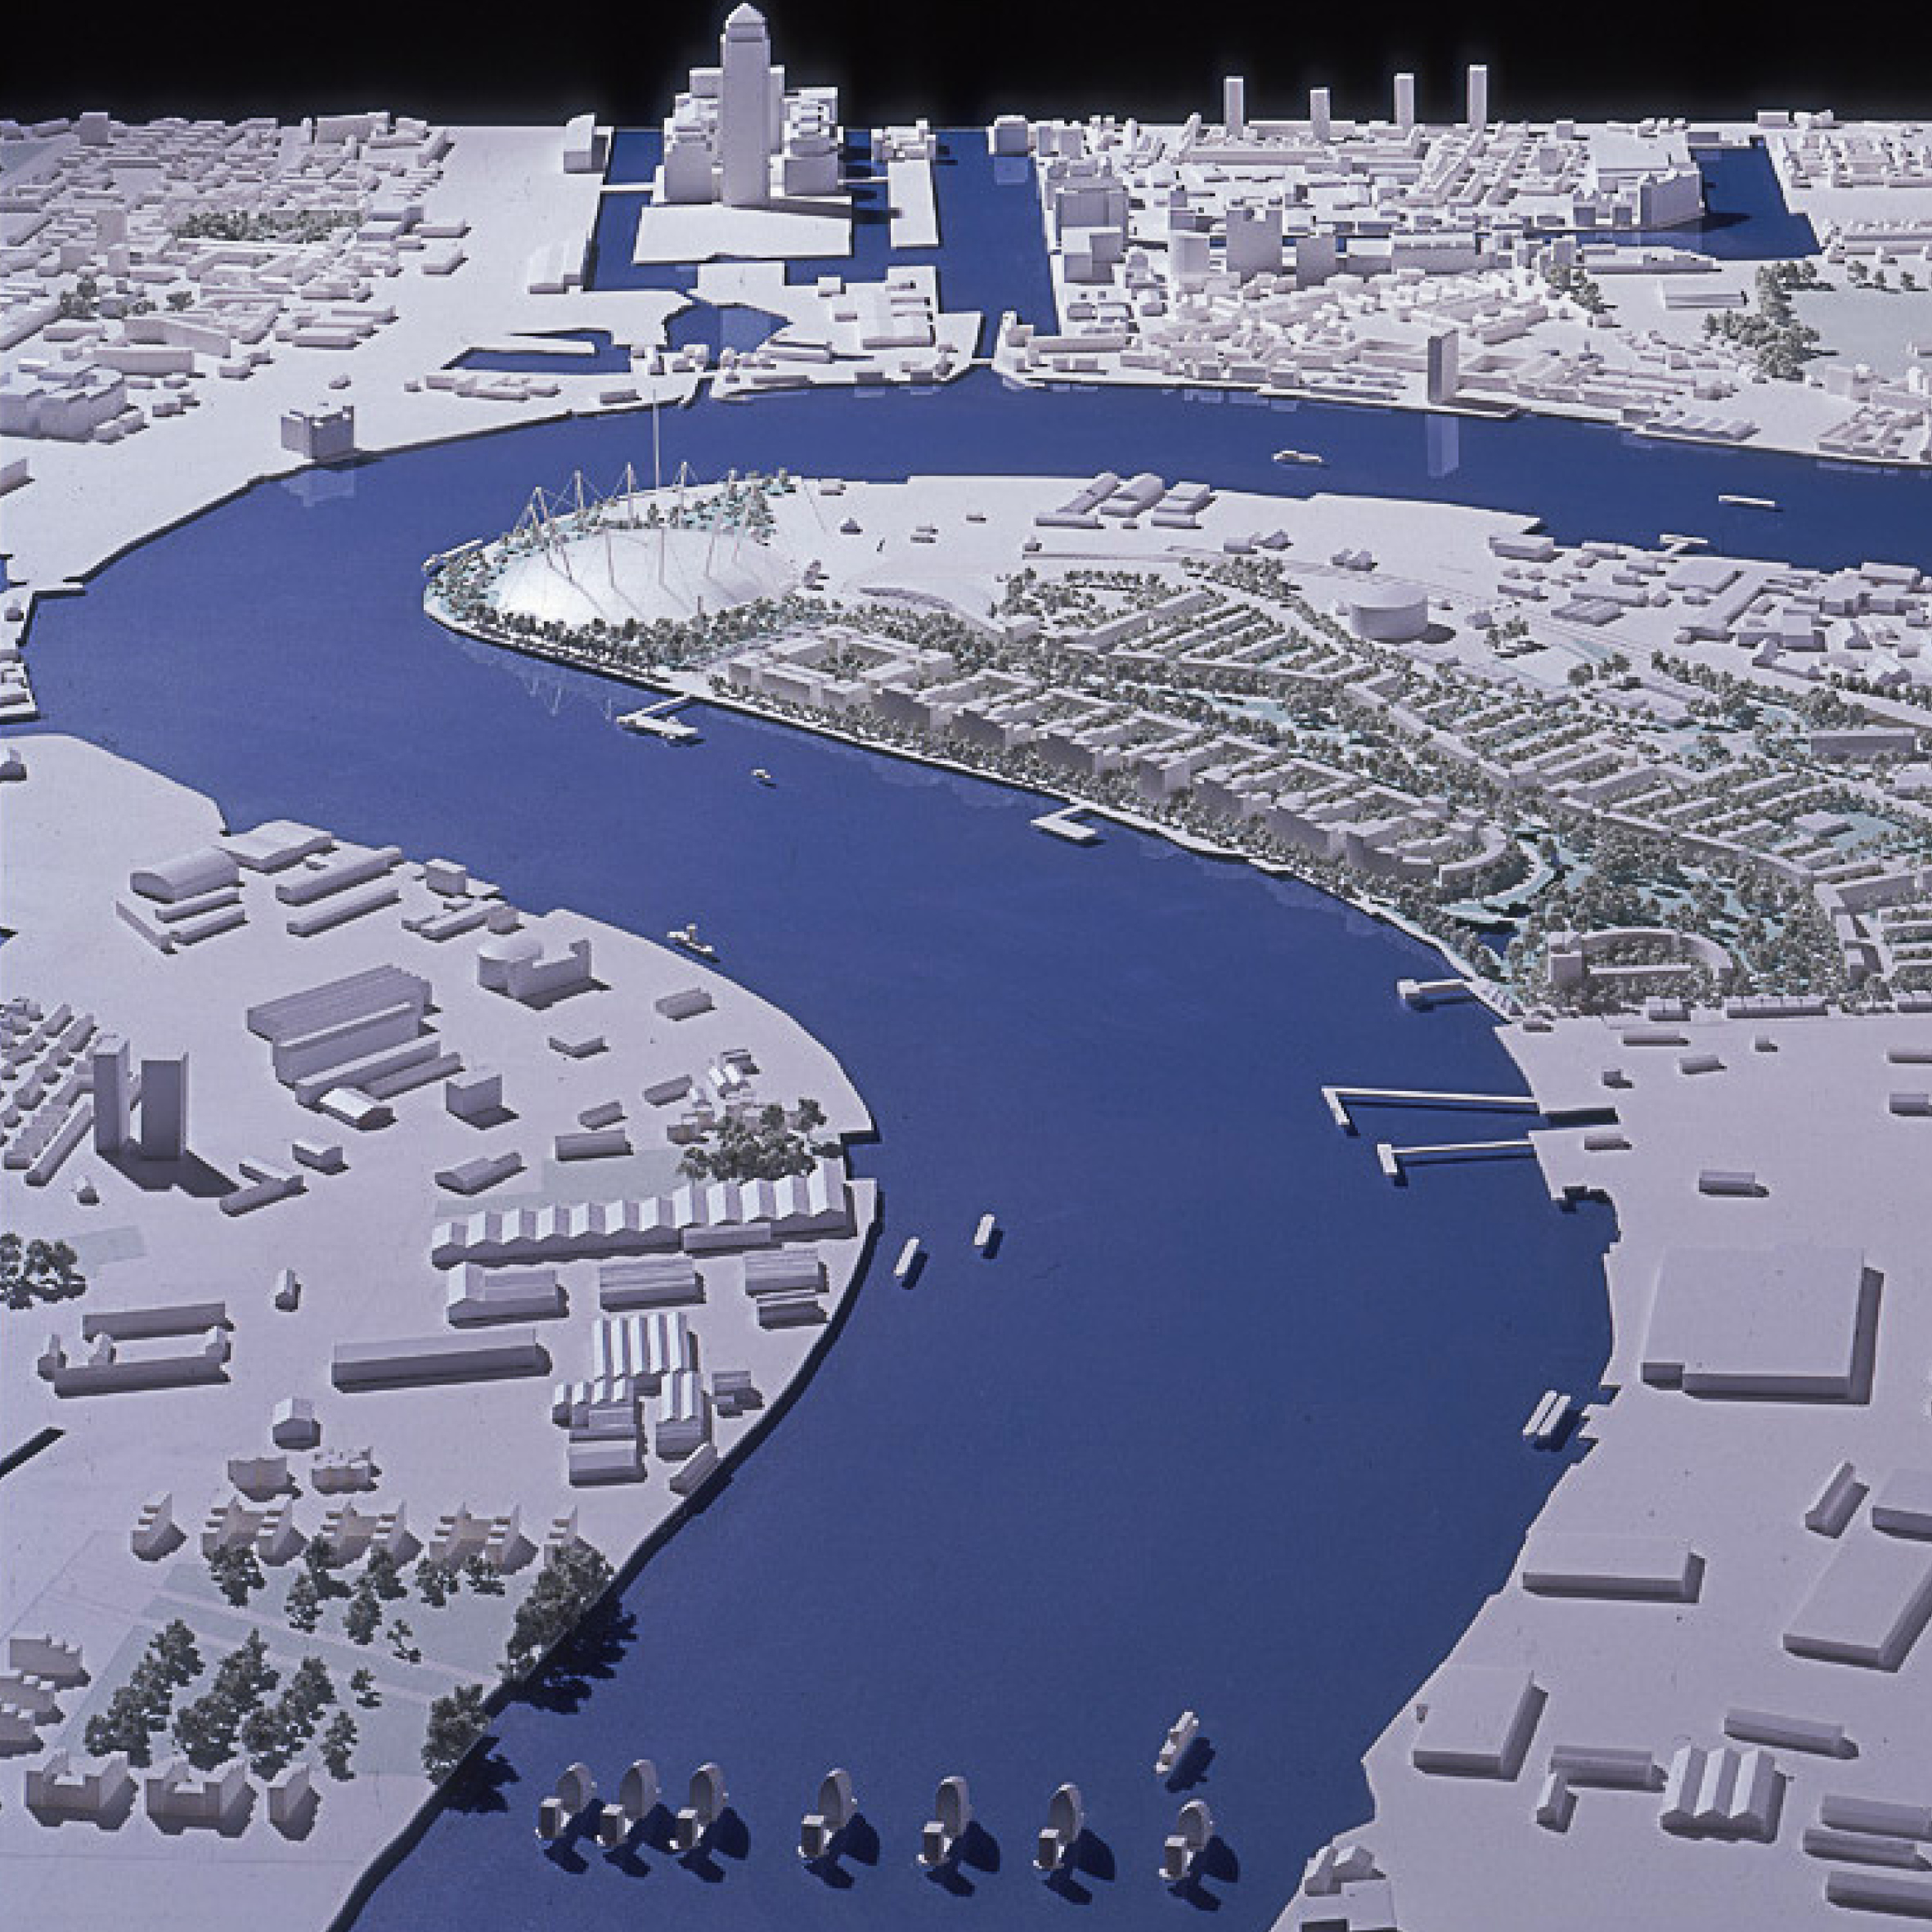 Physical model of the Millennium Dome project in the context of the Greenwich Peninsula masterplan. The Thames Barrier is in the foregreound and Canary Wharf in the background.